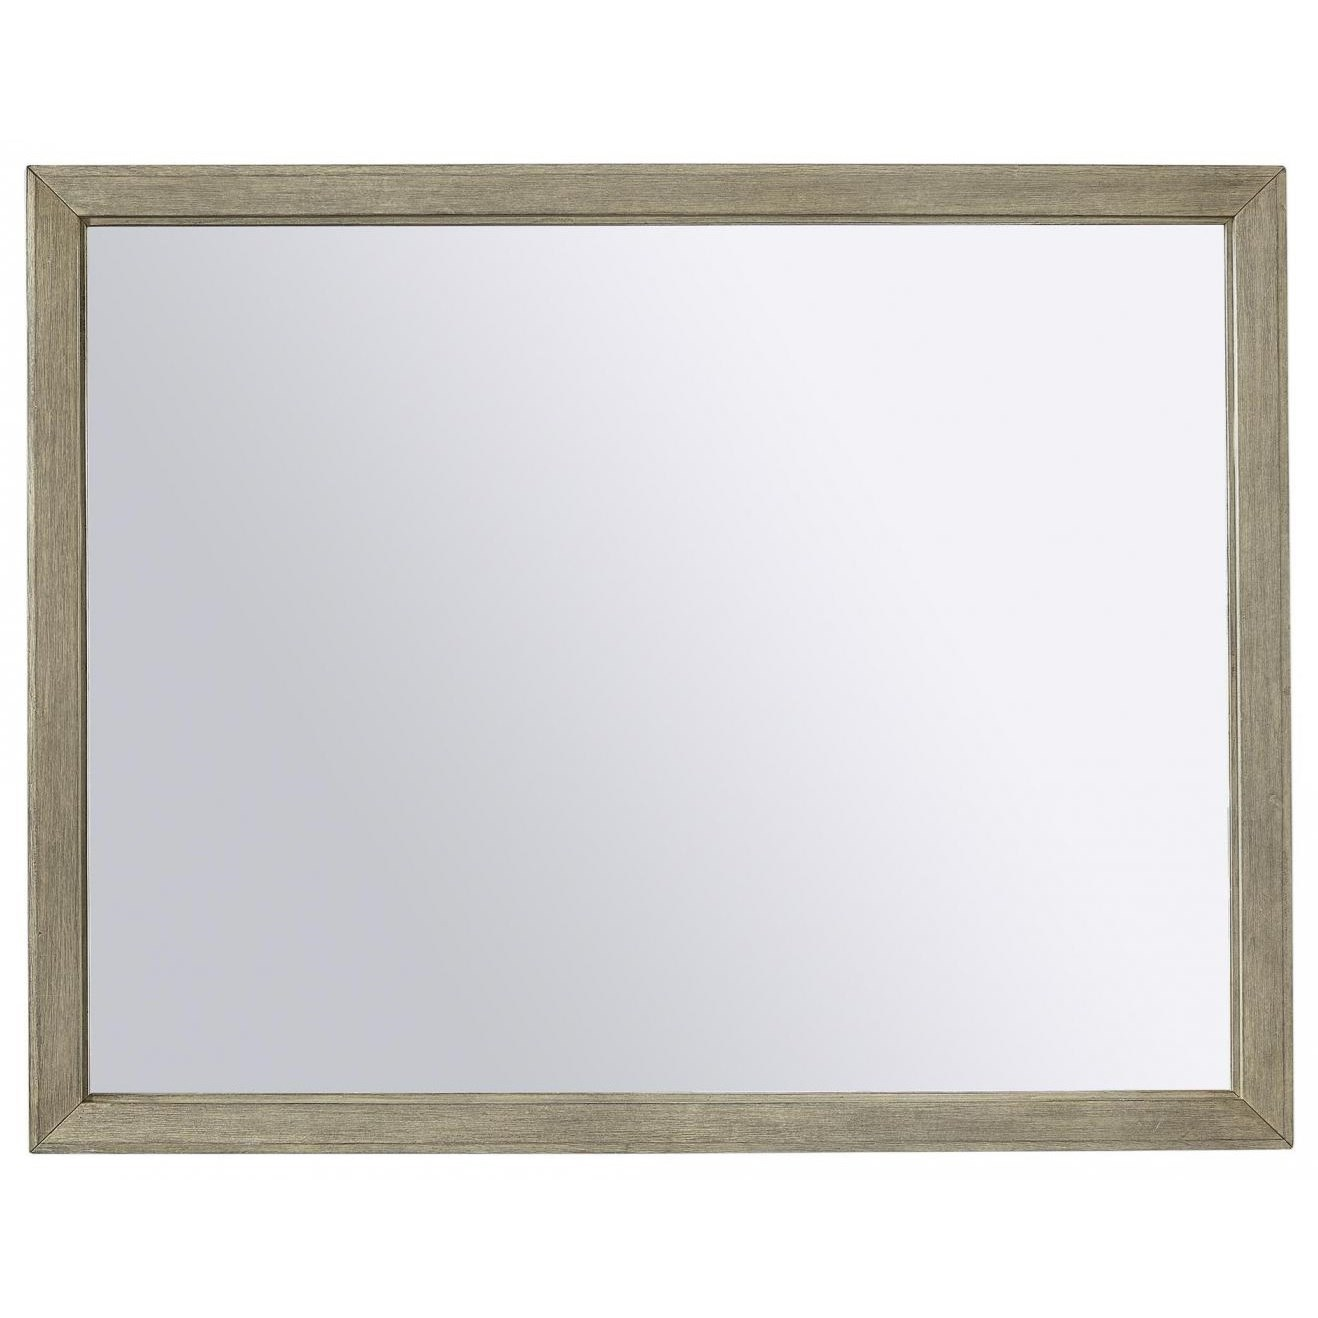 Platinum Place Platinum Place Mirror by Aspenhome at Morris Home